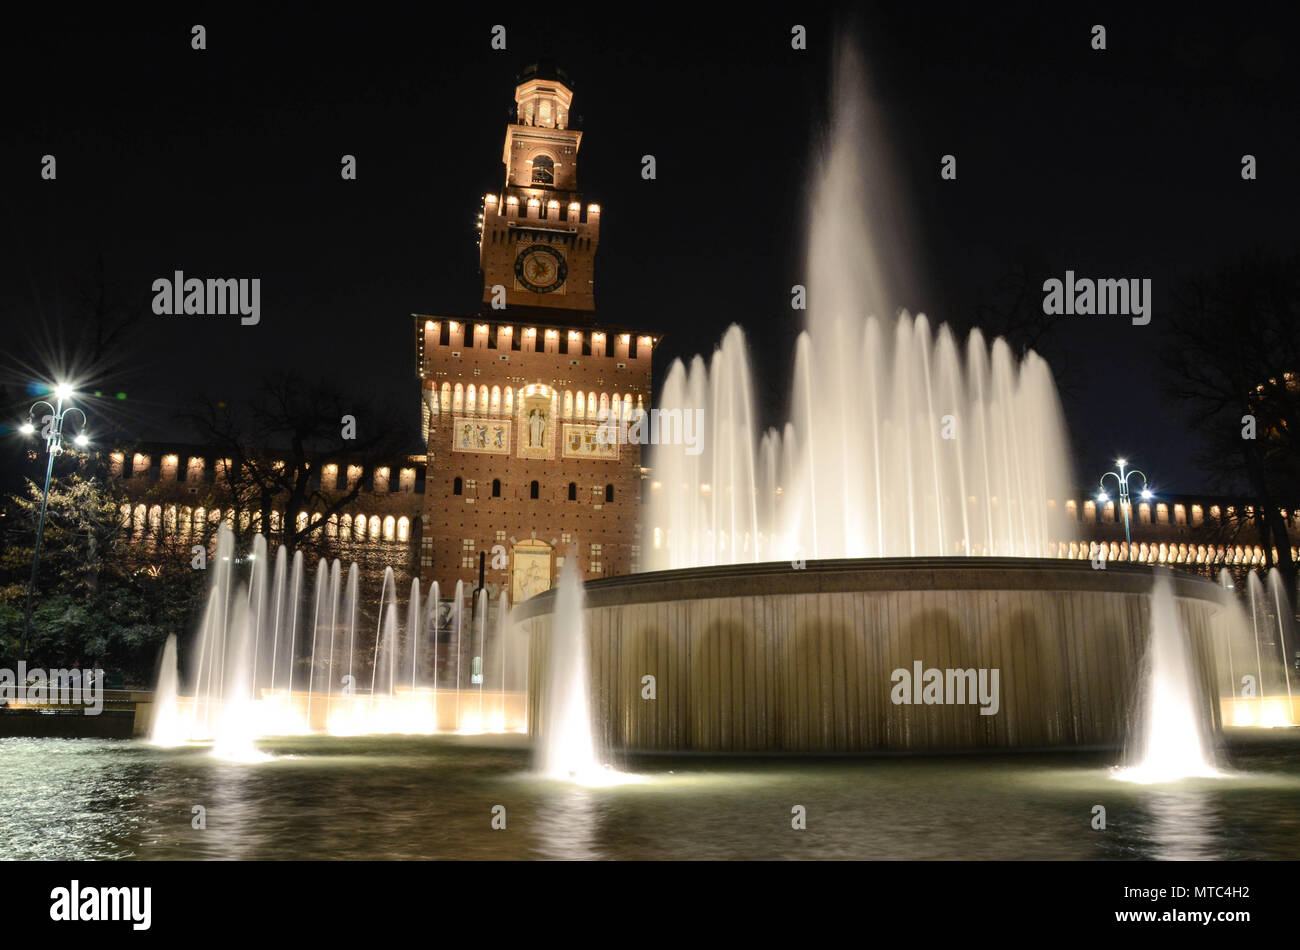 Water fountain in front of the Sforza Castle (Castello Sforzesco) at night, Milan, Lombardy, Italy, January 2018 - Stock Image